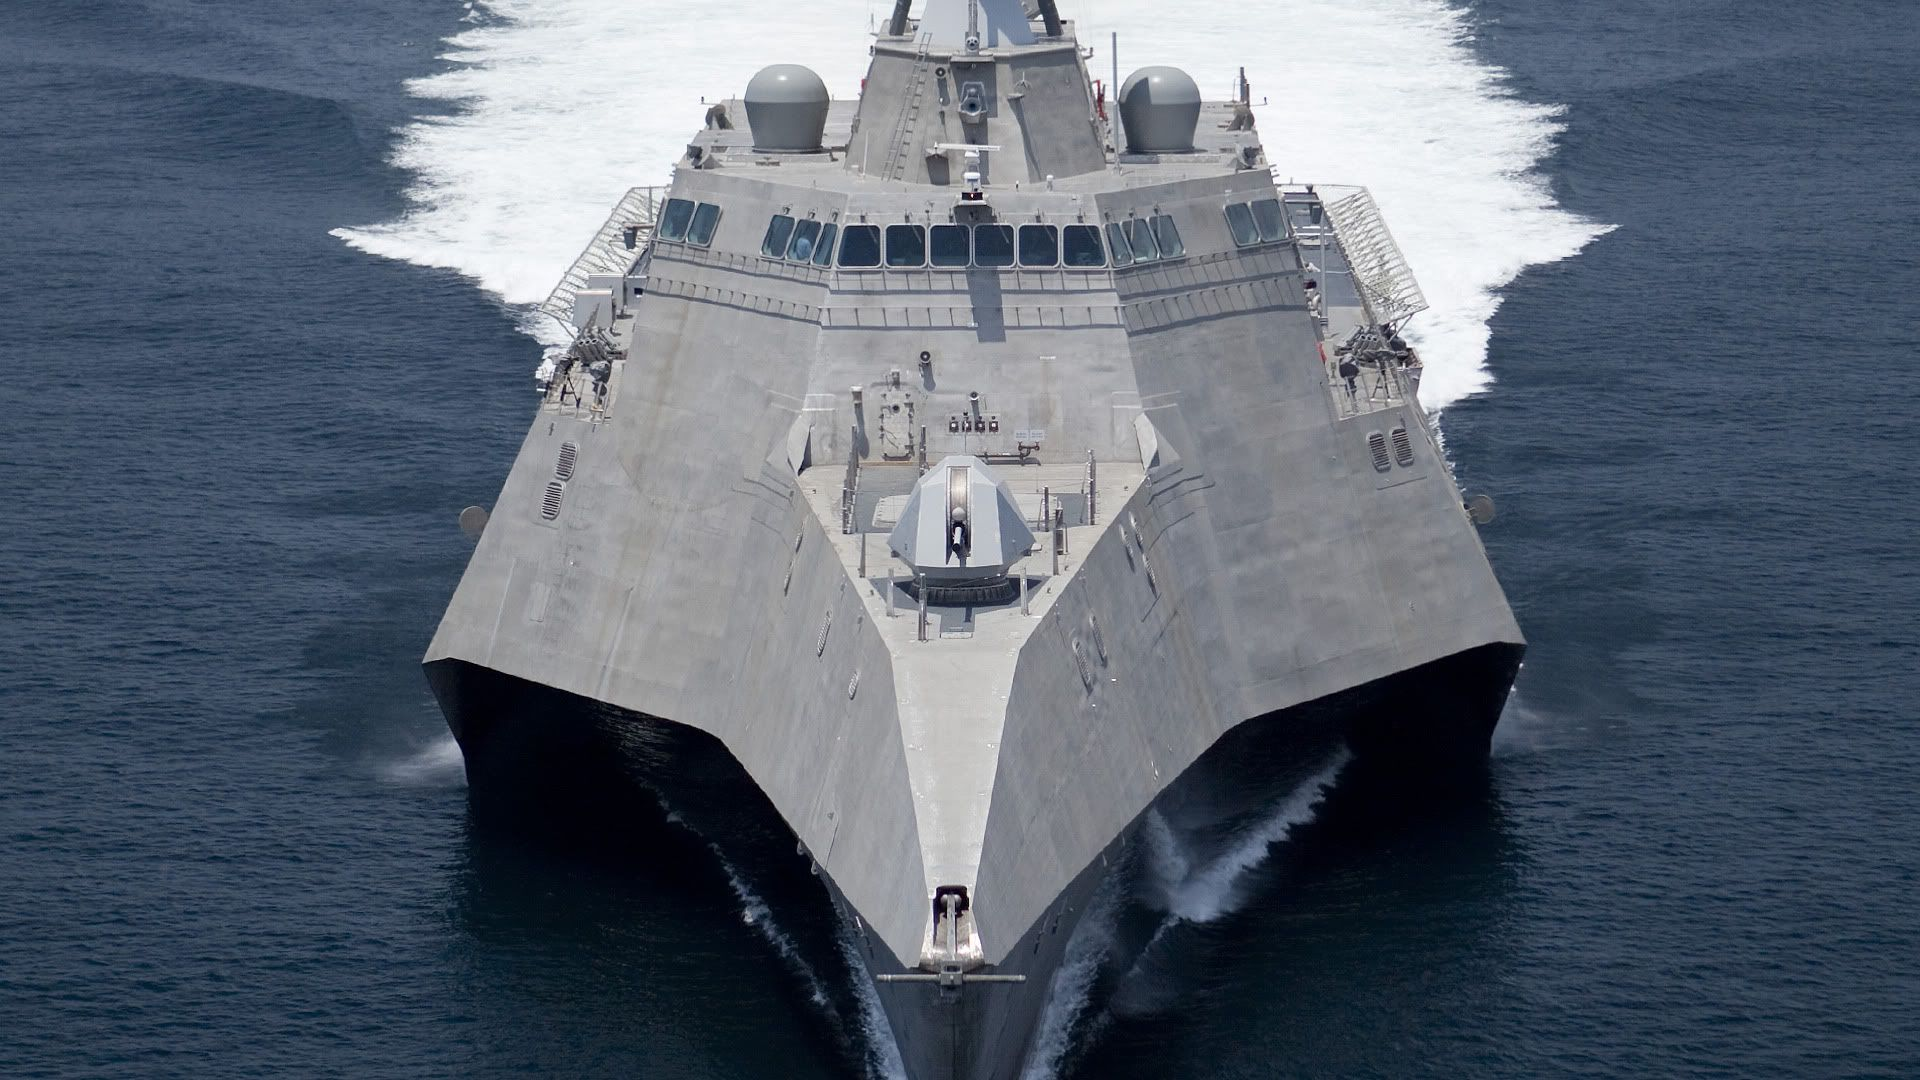 navy | THE U.S. NAVY'S LITTORAL COMBAT SHIP (LCS) HIGH SPEED SURFACE SHIPS ...